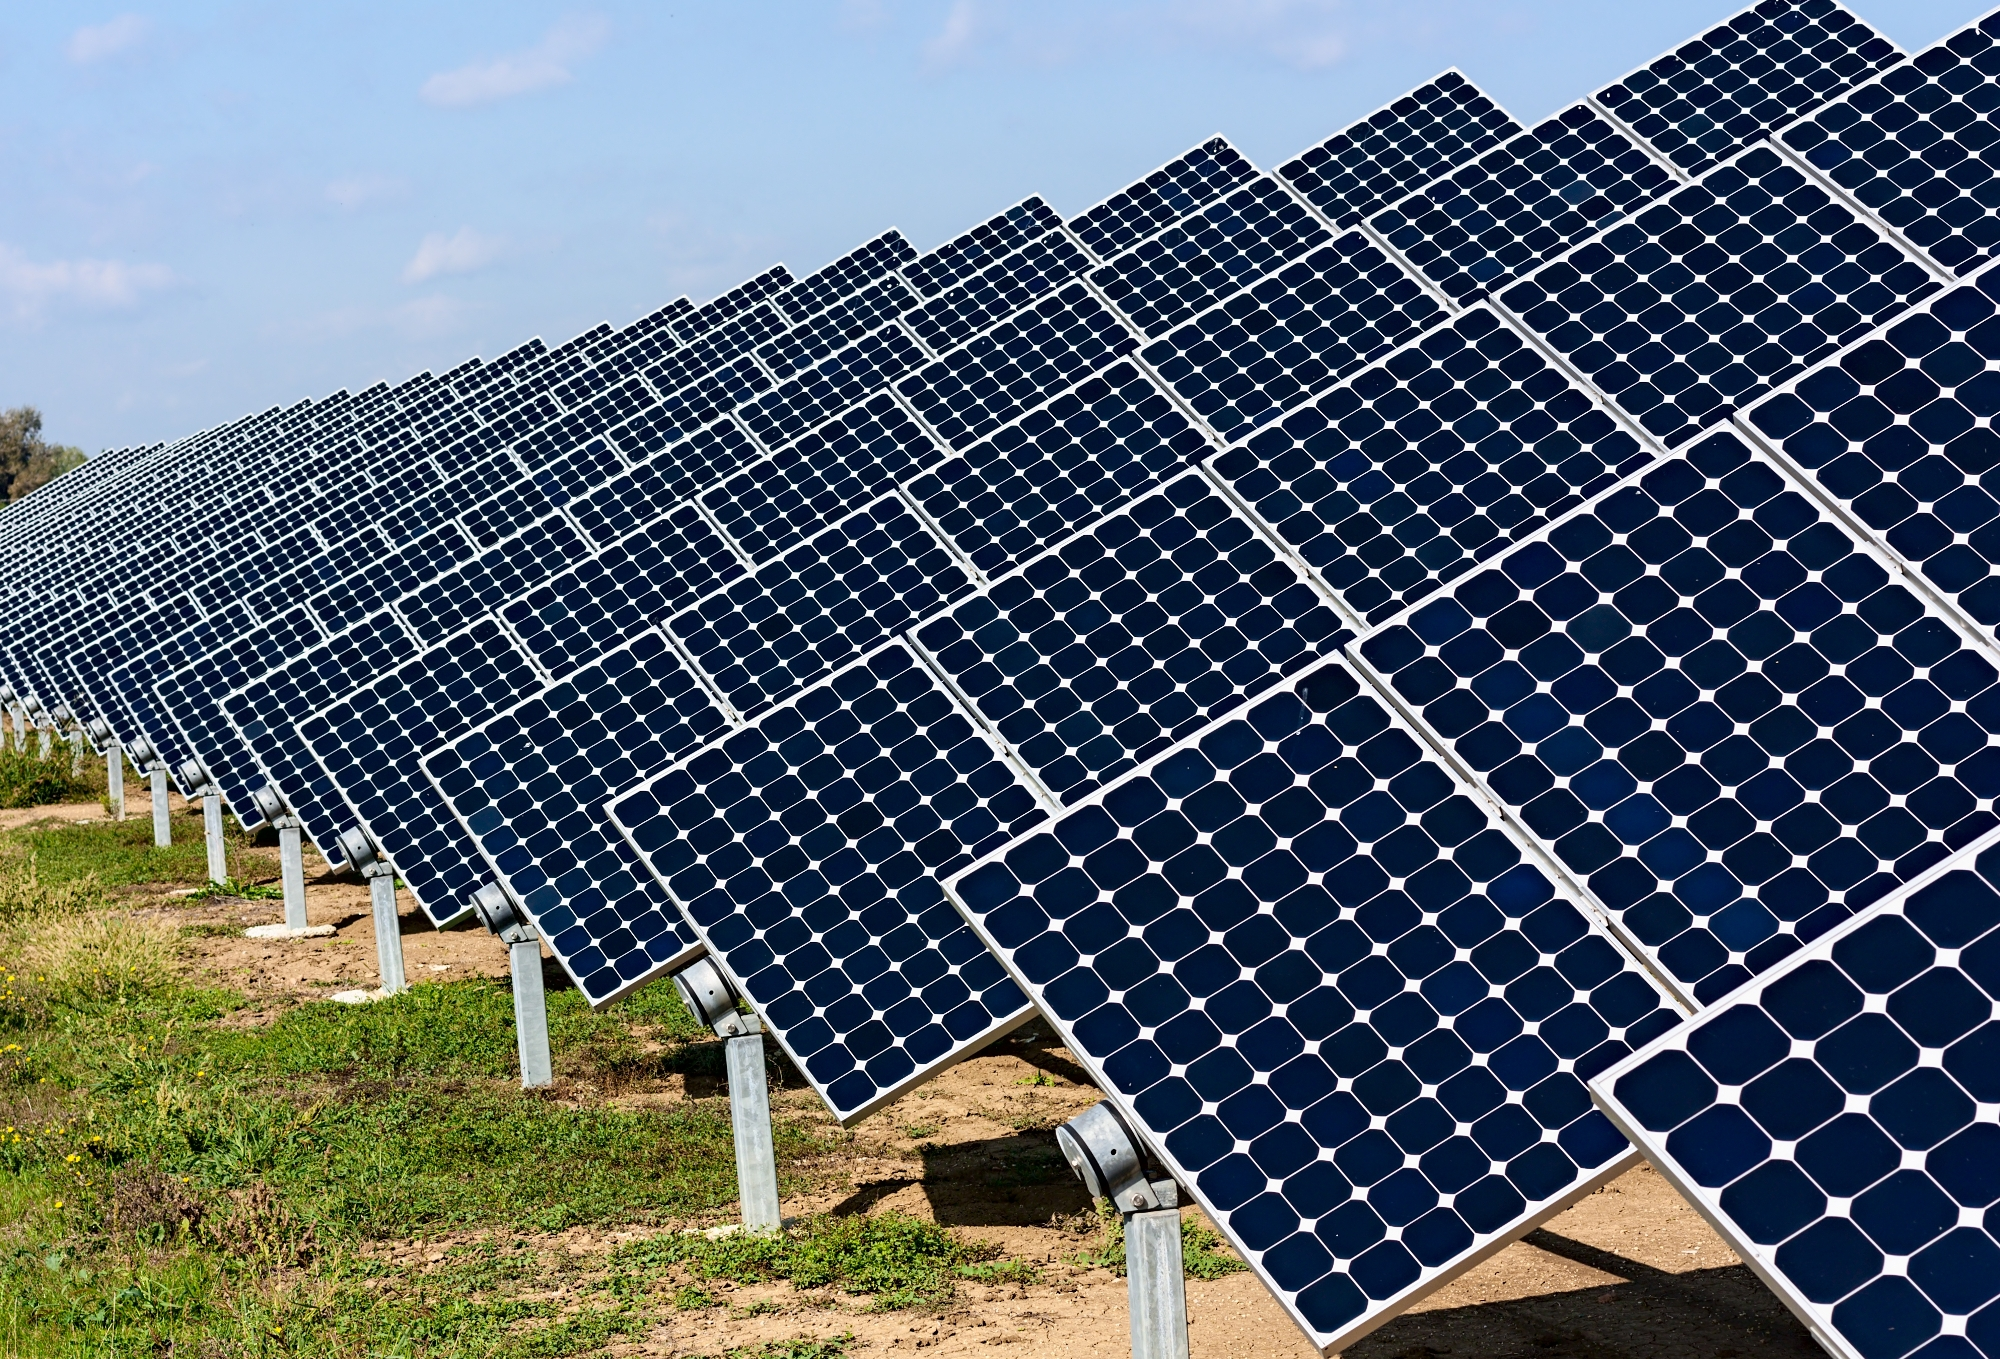 Photo of Government approves 81 ME investment in three solar power plants in Santarém